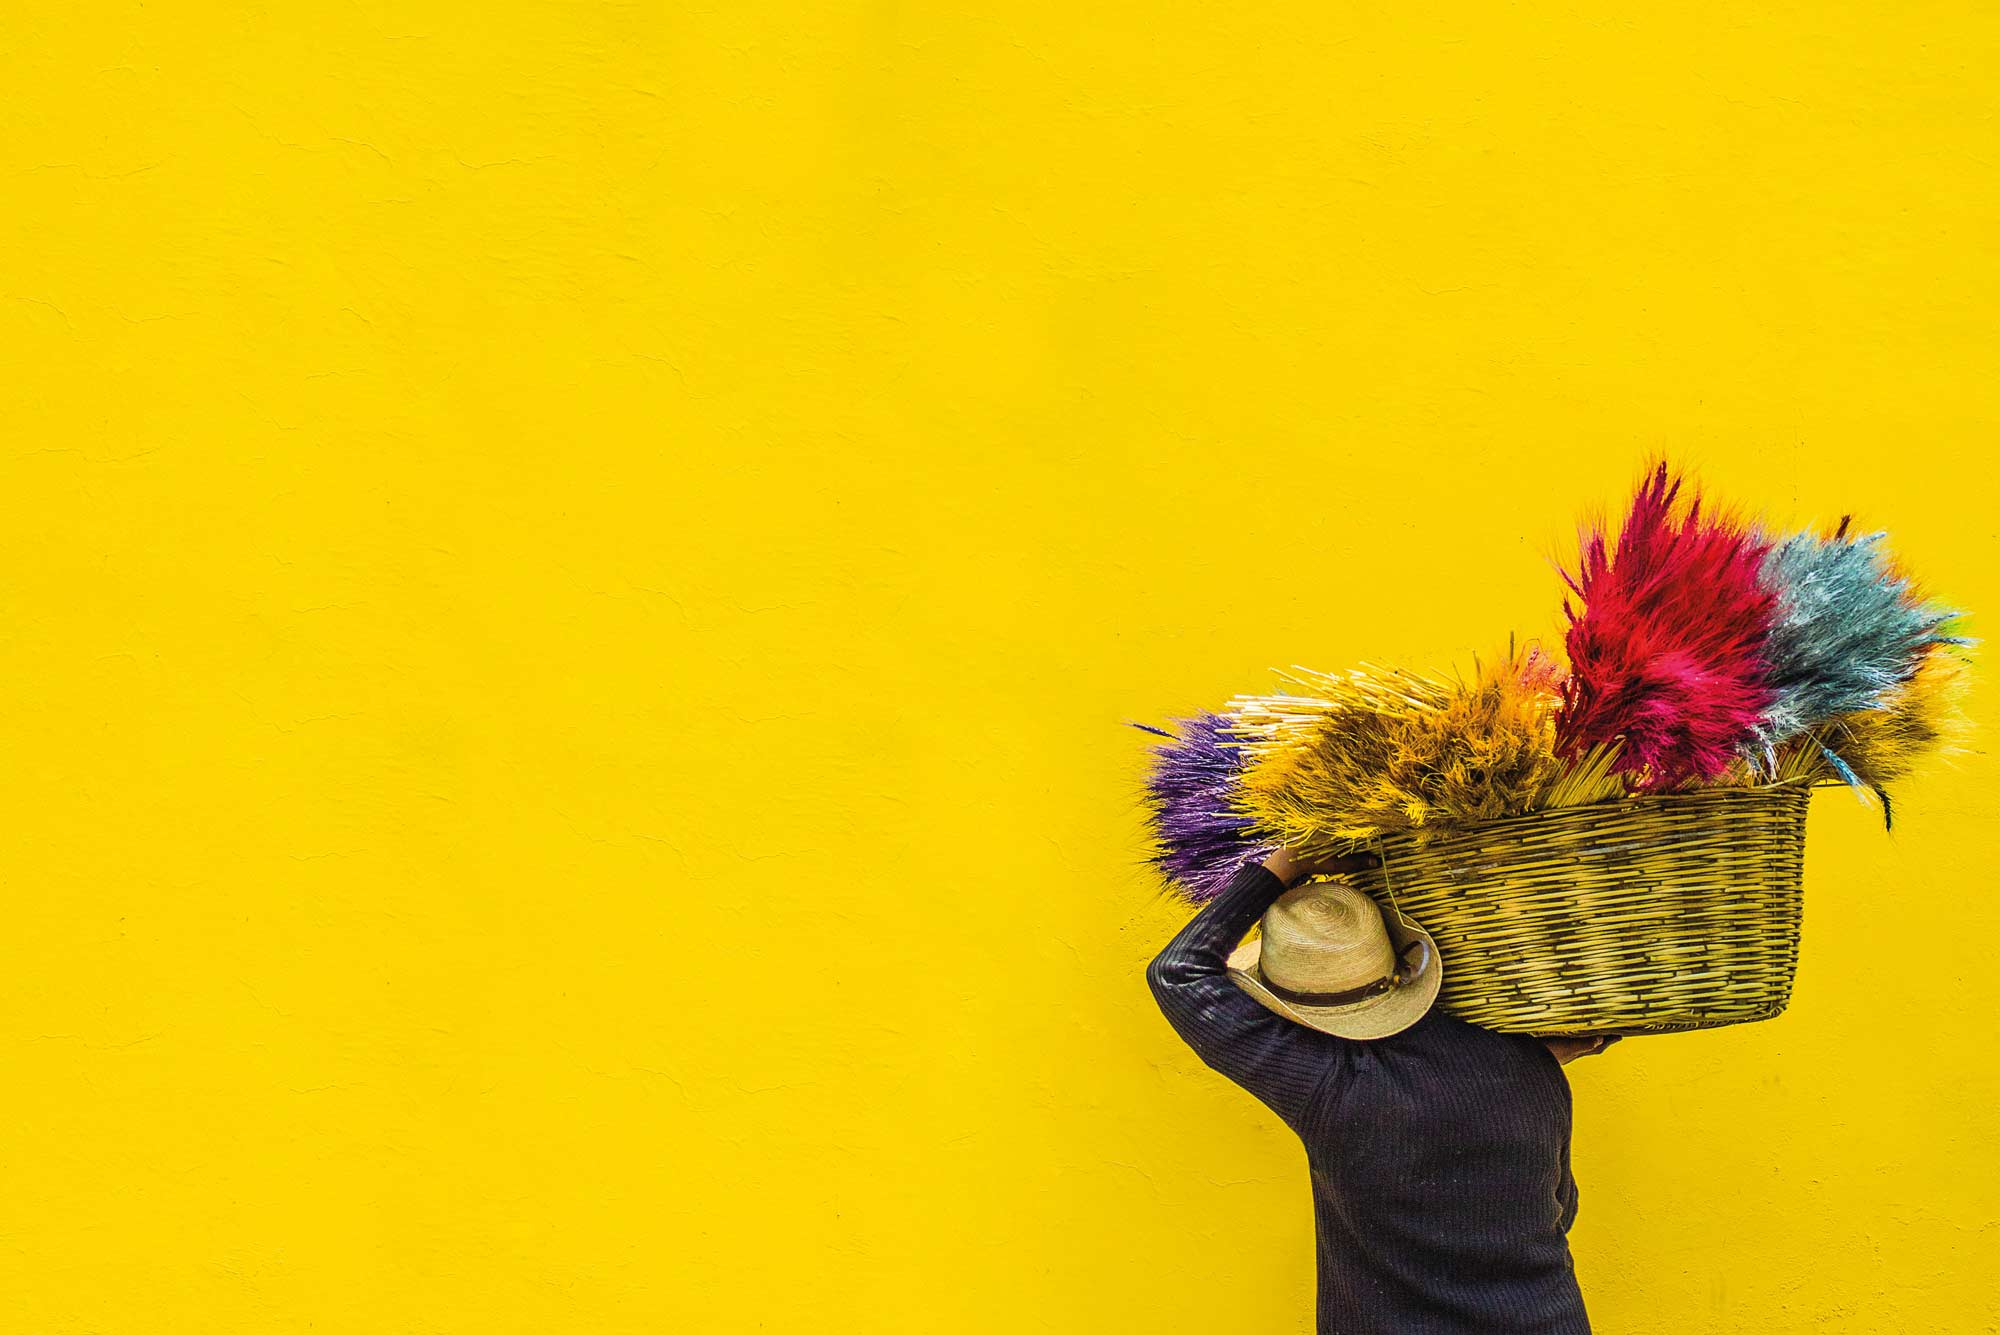 man_with_color_basket